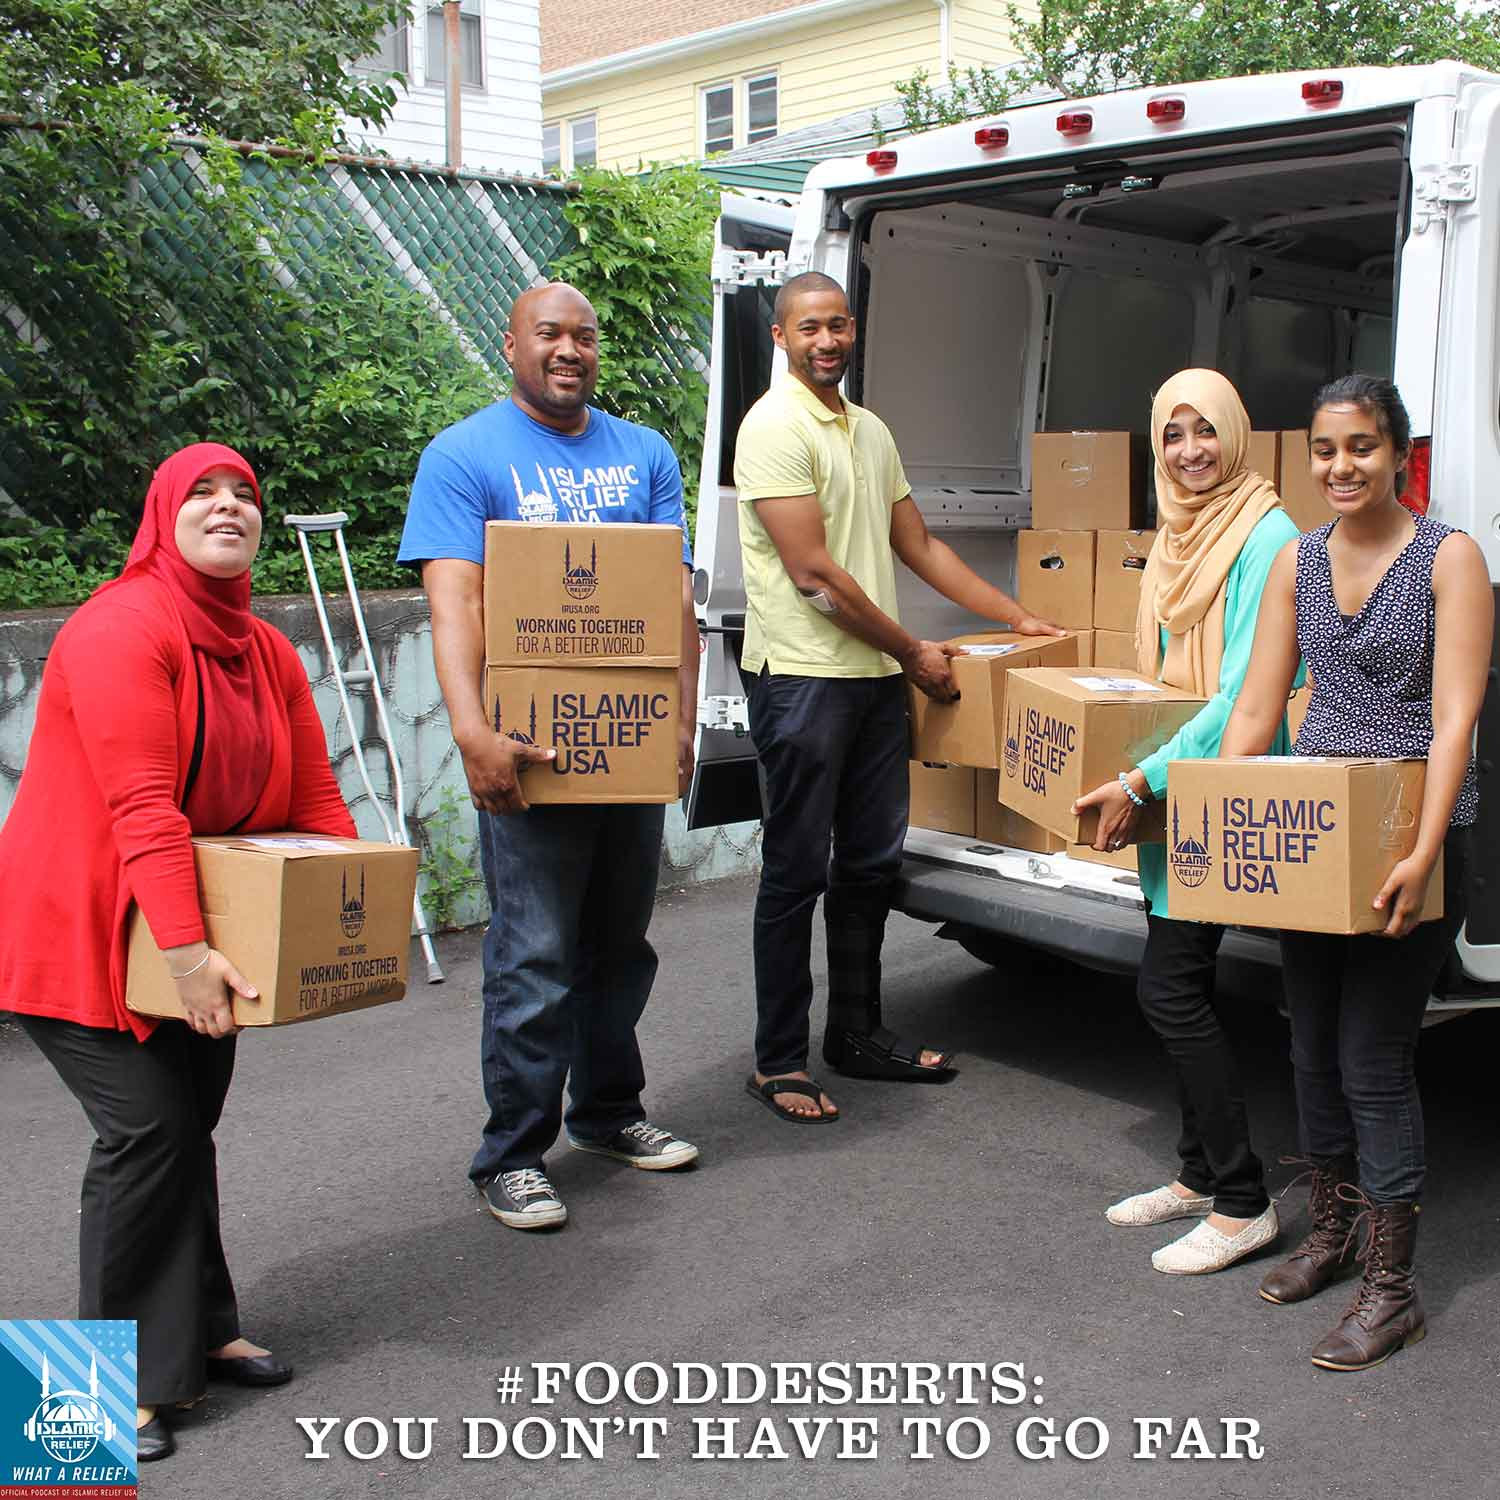 """B.C. Dodge & R. Mordant Mahon talk to Islamic Relief USA's Naeem Muhammad about caring for our communities in this episode of """"What a Relief!"""" — IRUSA's official podcast.  Are you familiar with the term food desert? Many of our American neighbors live in them."""